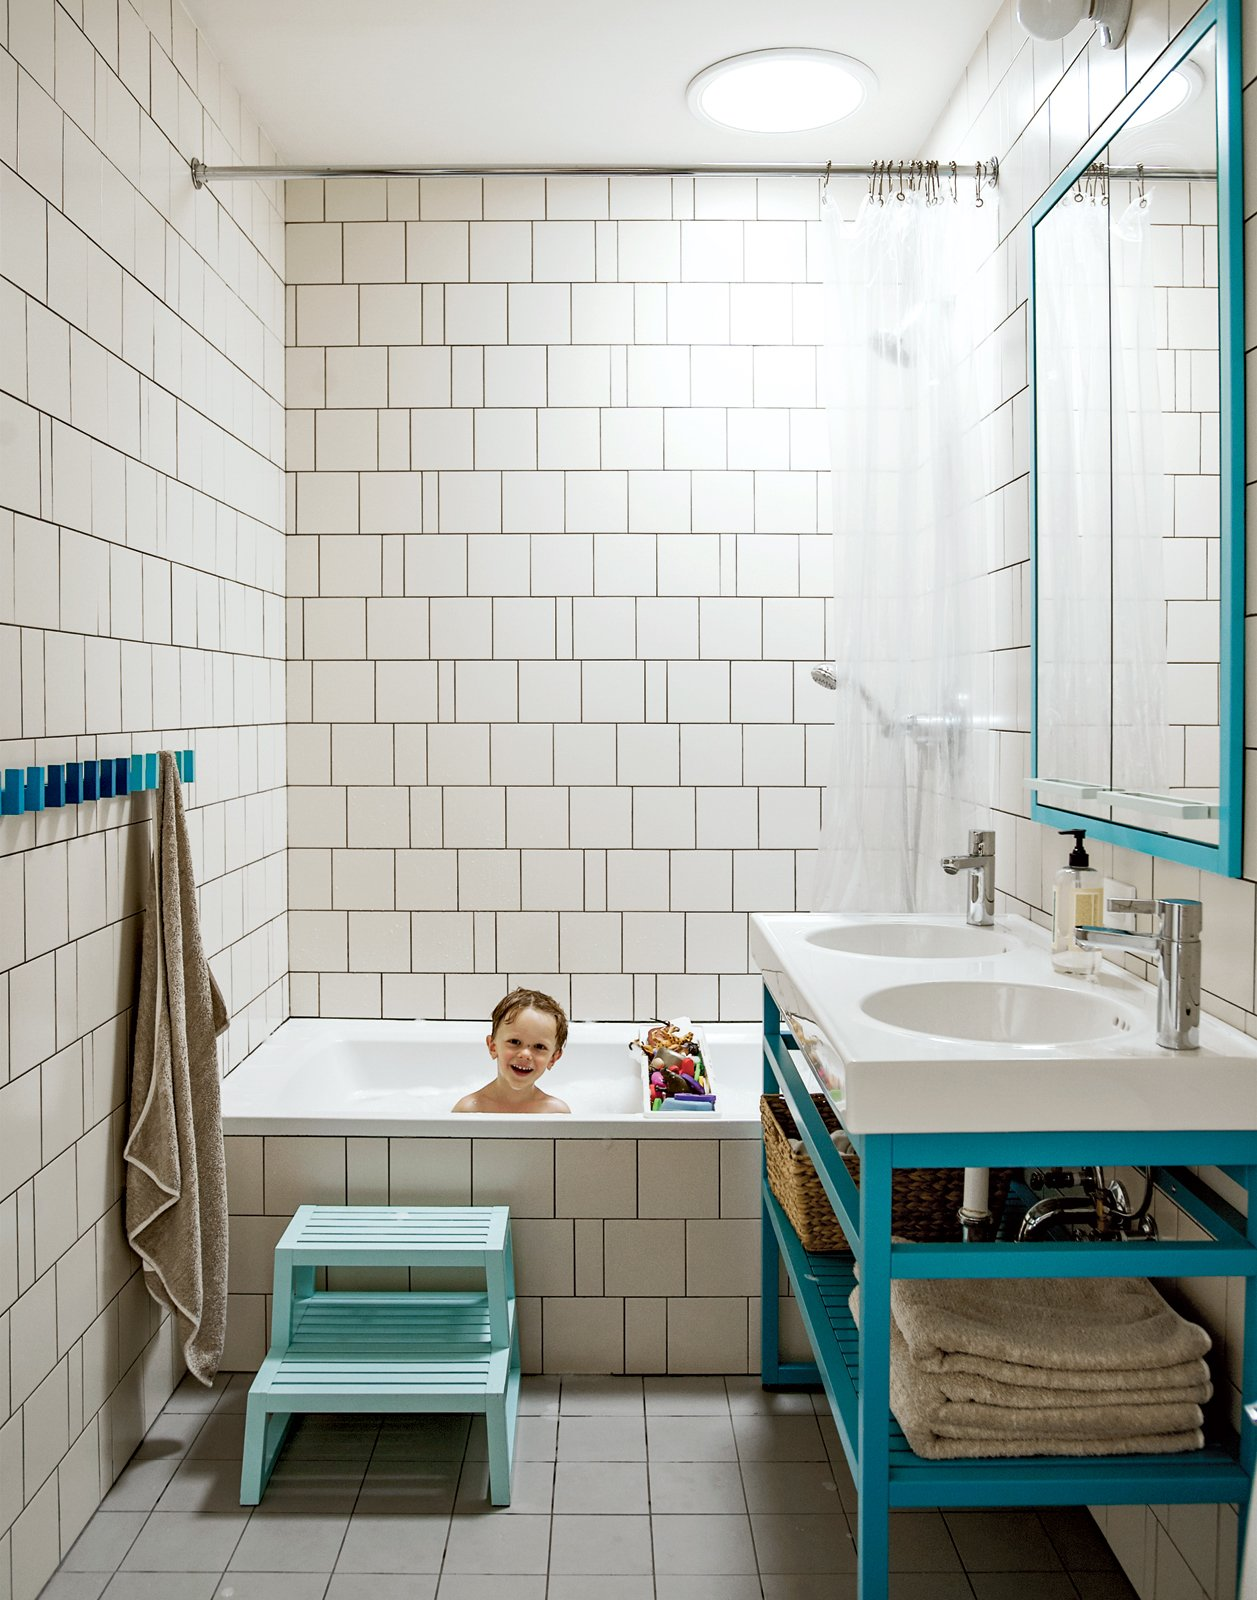 """Bath Room, Porcelain Tile Floor, and Drop In Tub A creative way of cutting costs is on display in son Nate's bathroom, where the wall tiles are arranged in a whimsical, irregular pattern making use of slim sections of tile cut for transitions and corners. """"We came up with a pattern that could incorporate random sizes so we were able to order the exact amount of tile that we needed,"""" Bischoff says. """"It allowed us to get the most out of the tile price because there wasn't that 20 percent that [would normally go] into the landfill."""" The two-bowl sink is the Vitviken model from Ikea; it's topped with a chrome Hansgrohe faucet and accented by Ikea's Godmorgon medicine cabinets customized by MADE.  Photo 7 of 9 in The Brownstone Baked to Perfection"""